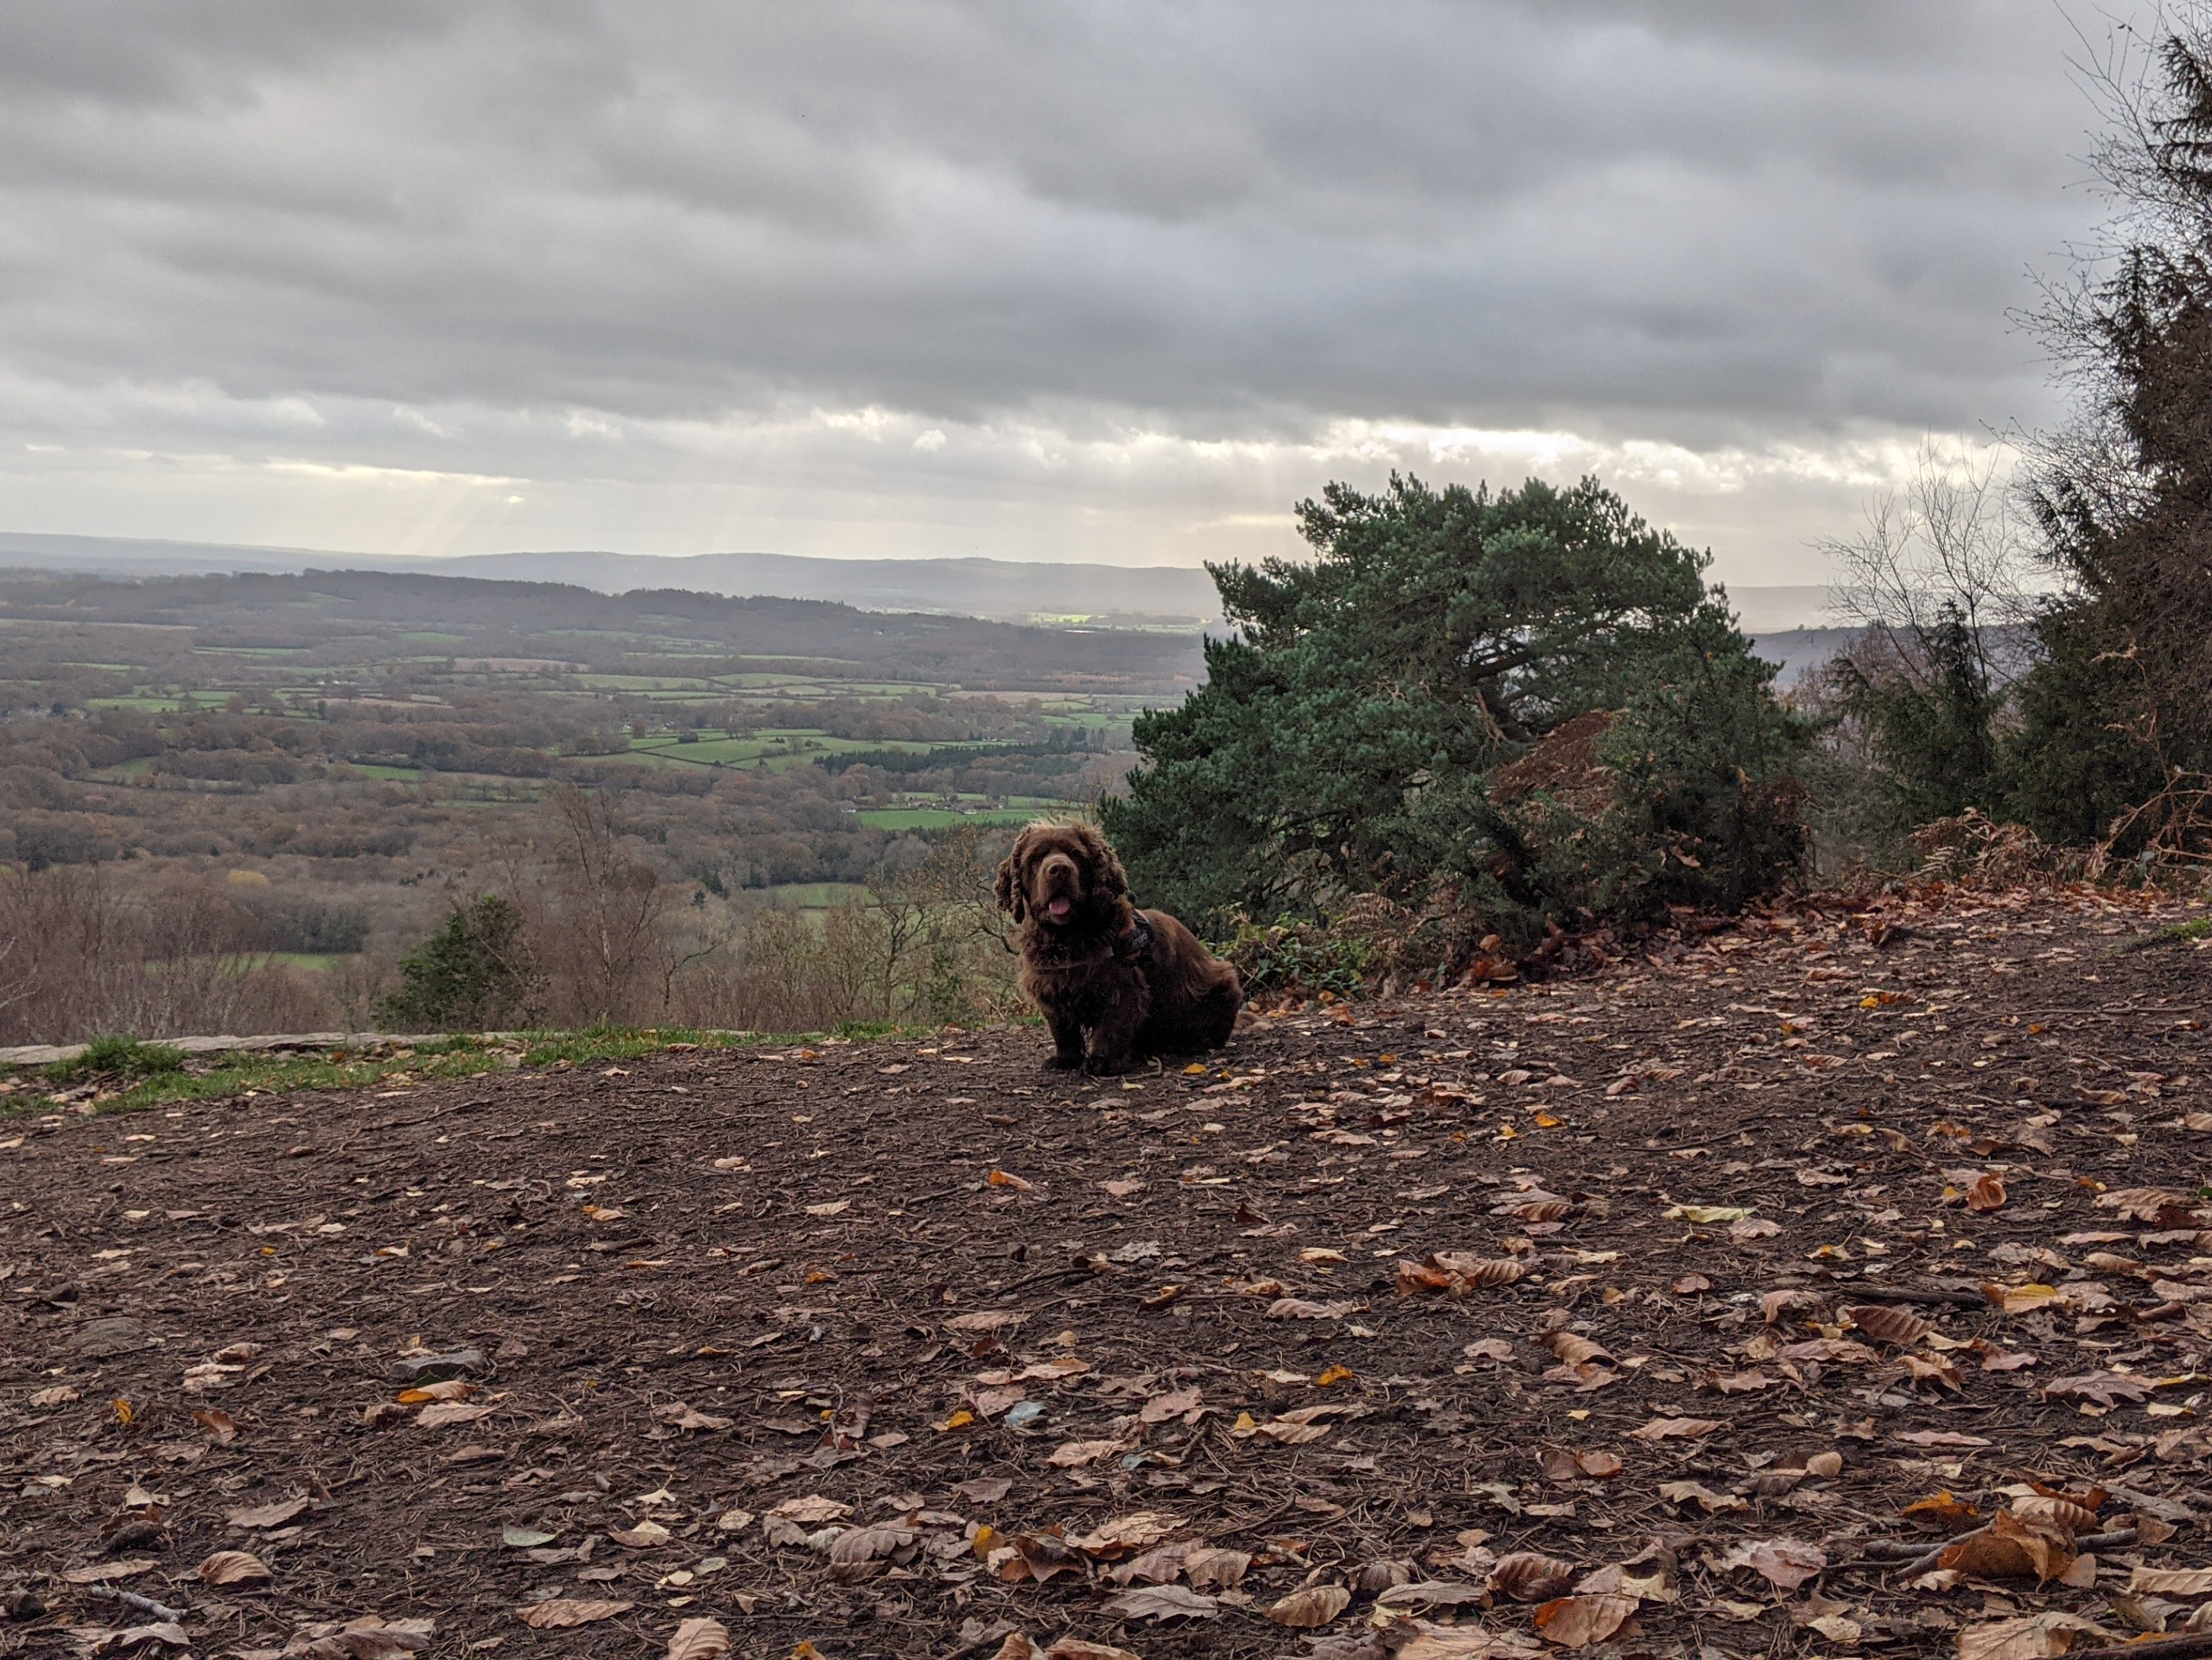 Sussex spaniel dog looking straight at the camera with green hills in the distance.